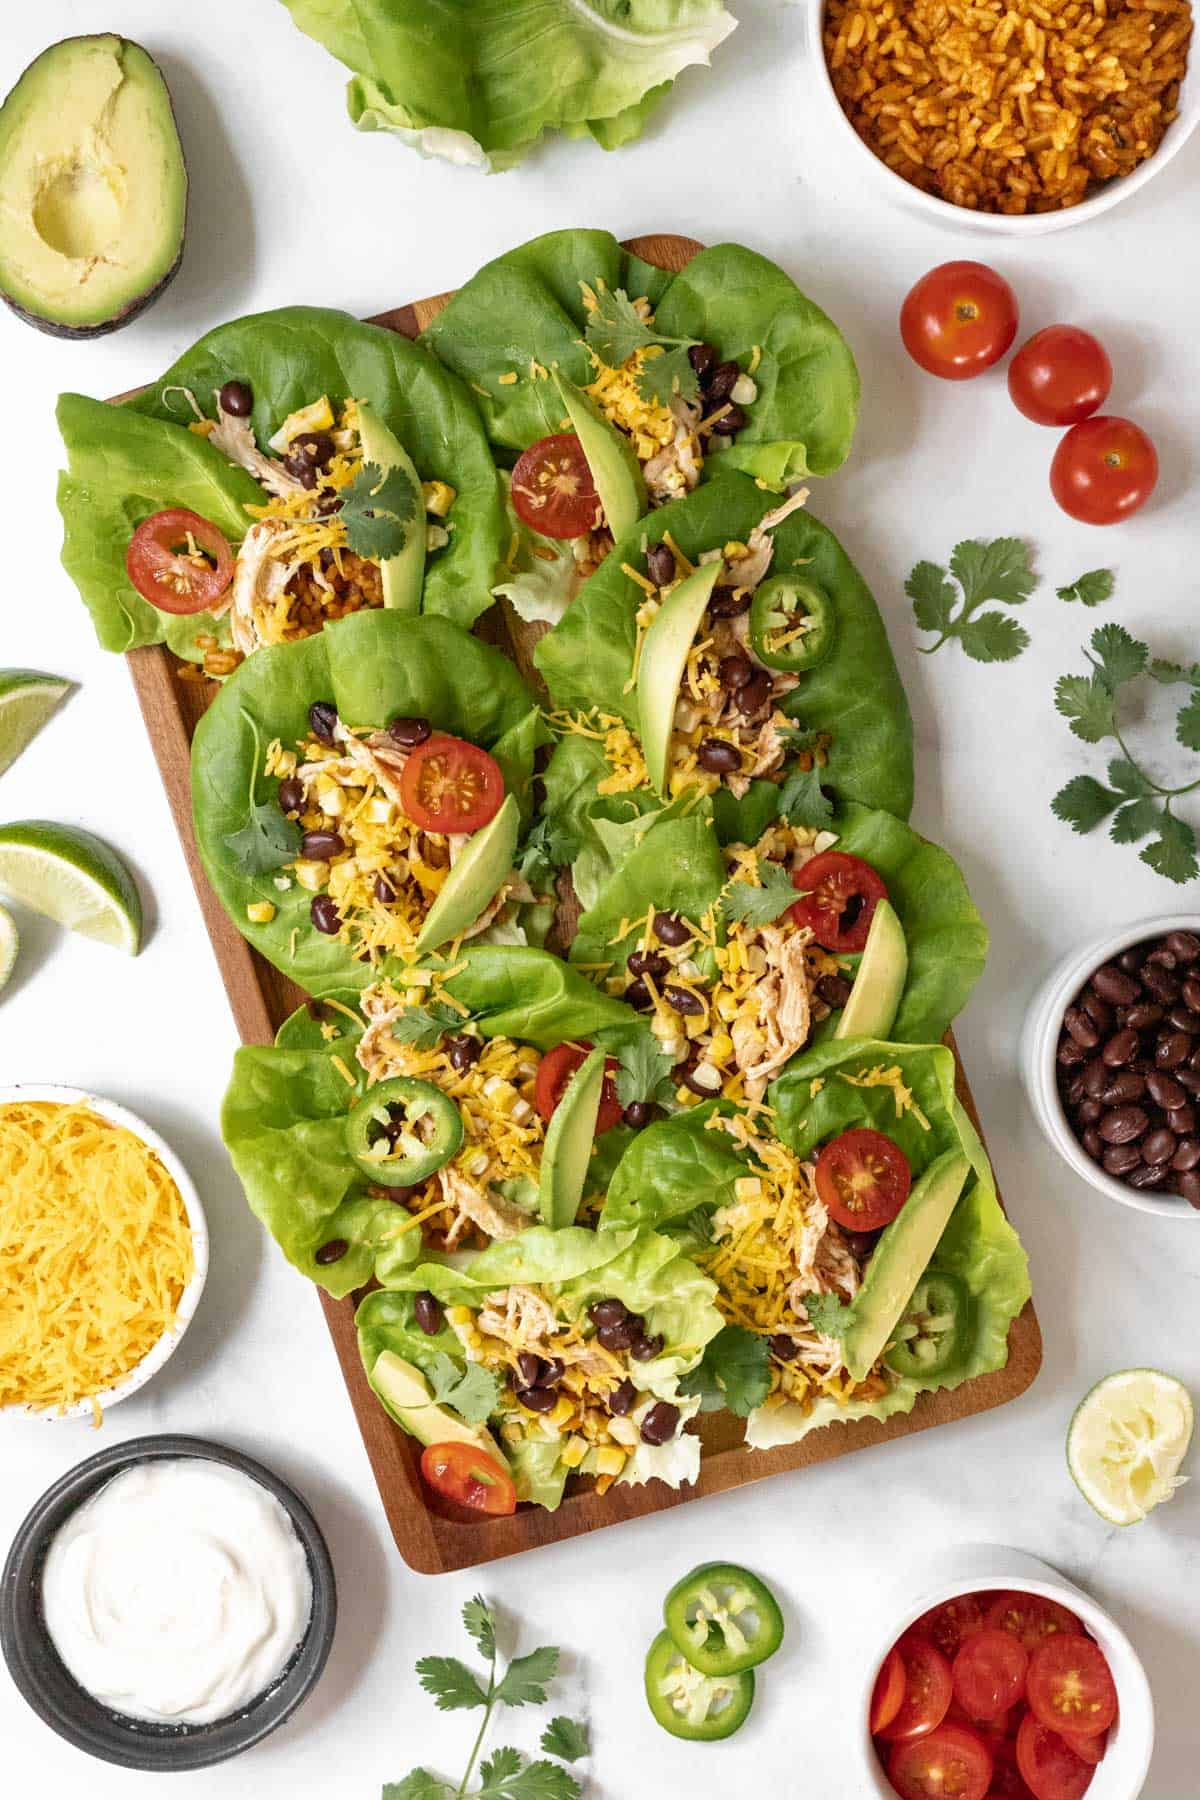 Overhead view of shredded chicken lettuce wraps on a rectangular serving platter with the taco fixings around it.